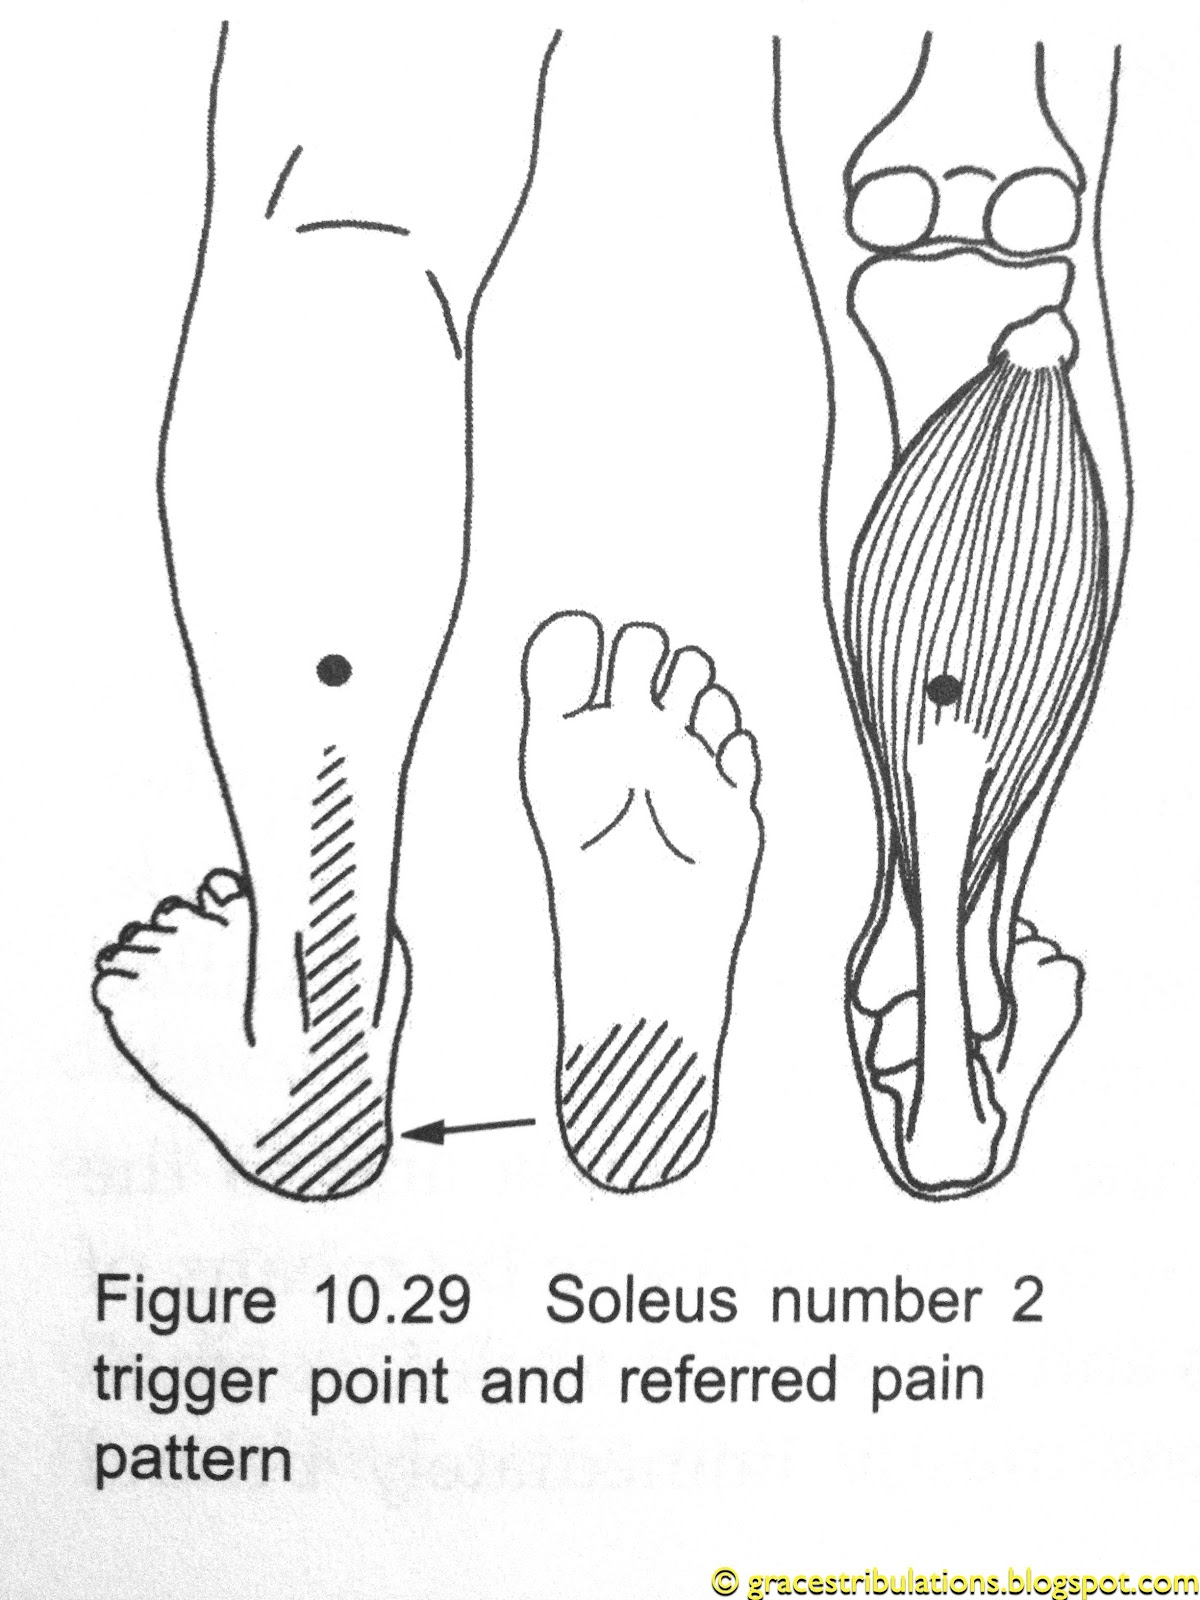 Grace S Tri Bulations Trigger Point Plantar Fasciitis